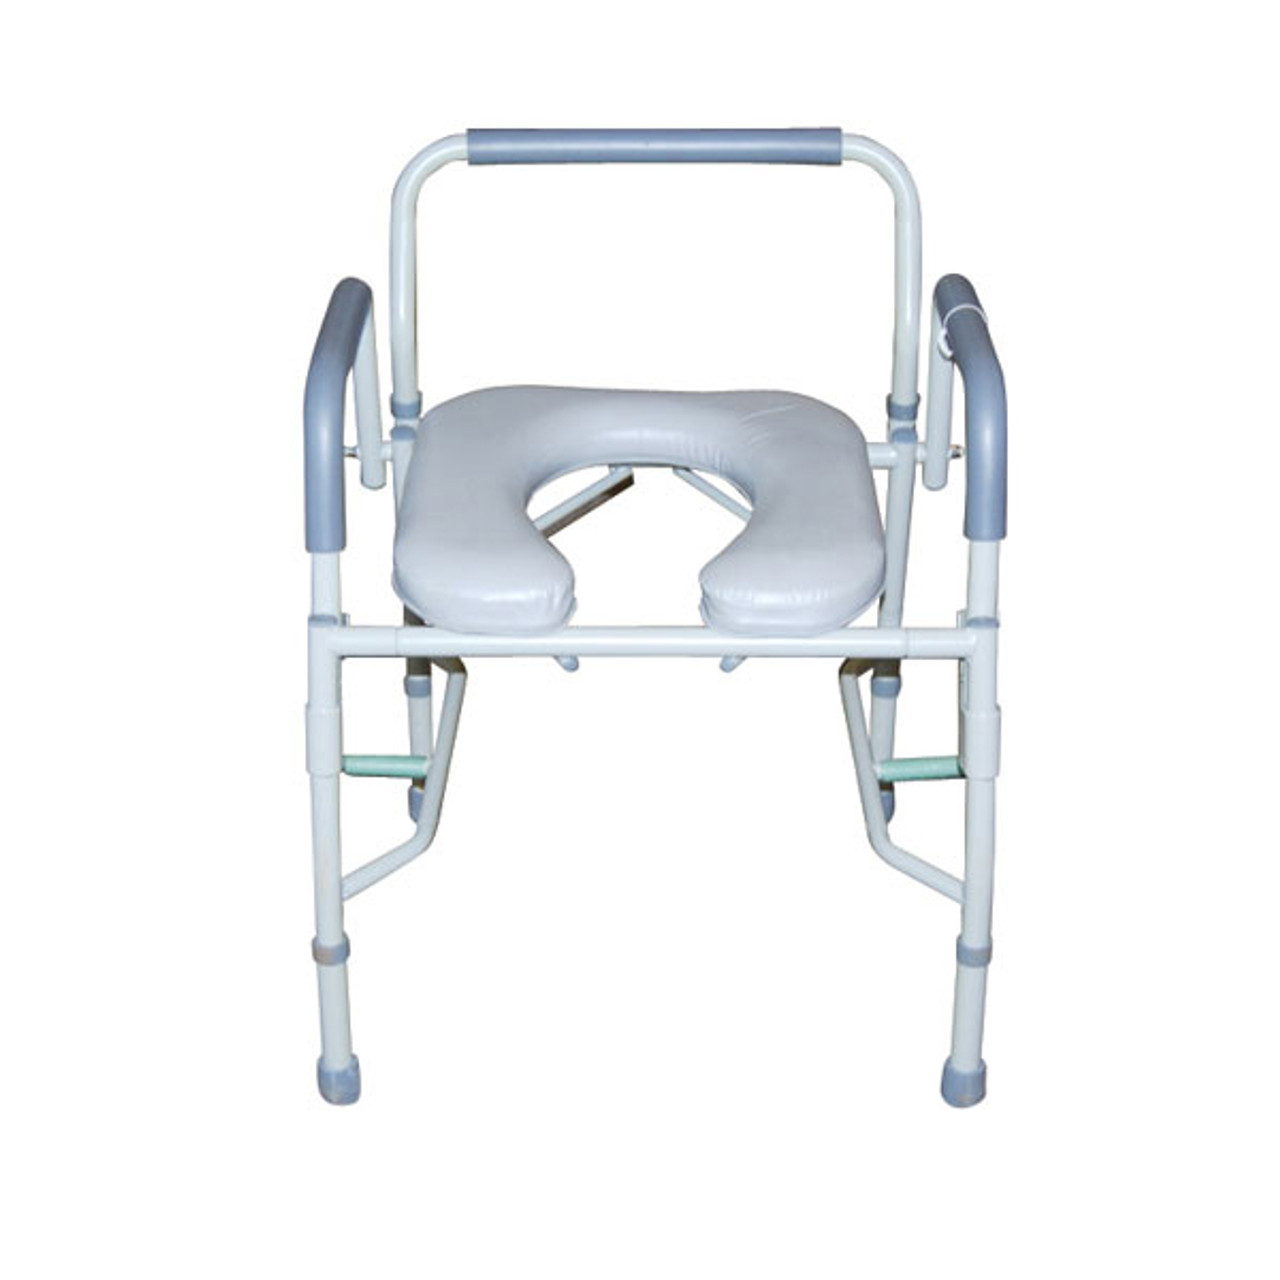 Astonishing Drive Medical Steel Drop Arm Bedside Commode With Padded Seat Arms Ibusinesslaw Wood Chair Design Ideas Ibusinesslaworg